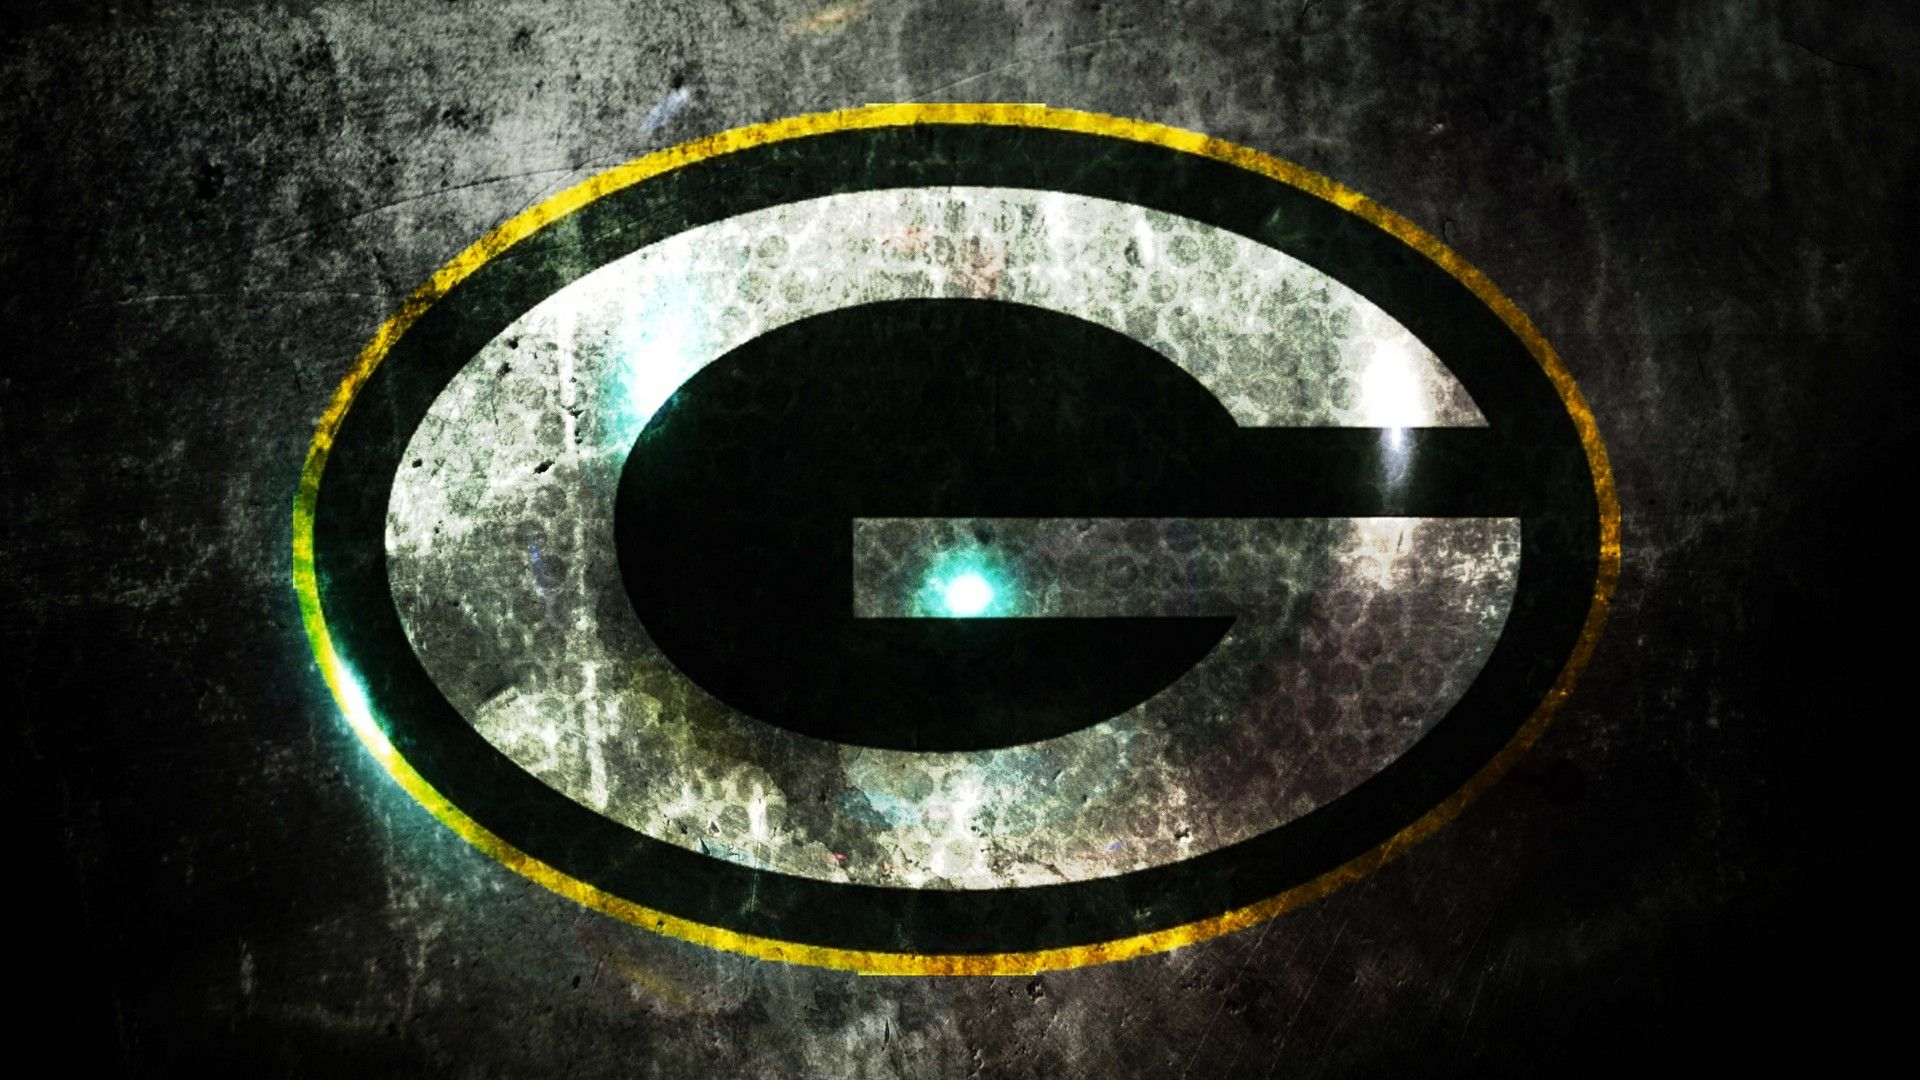 Nfl Wallpapers Green Bay Packers Wallpaper Green Bay Packers Green Bay Packers Logo